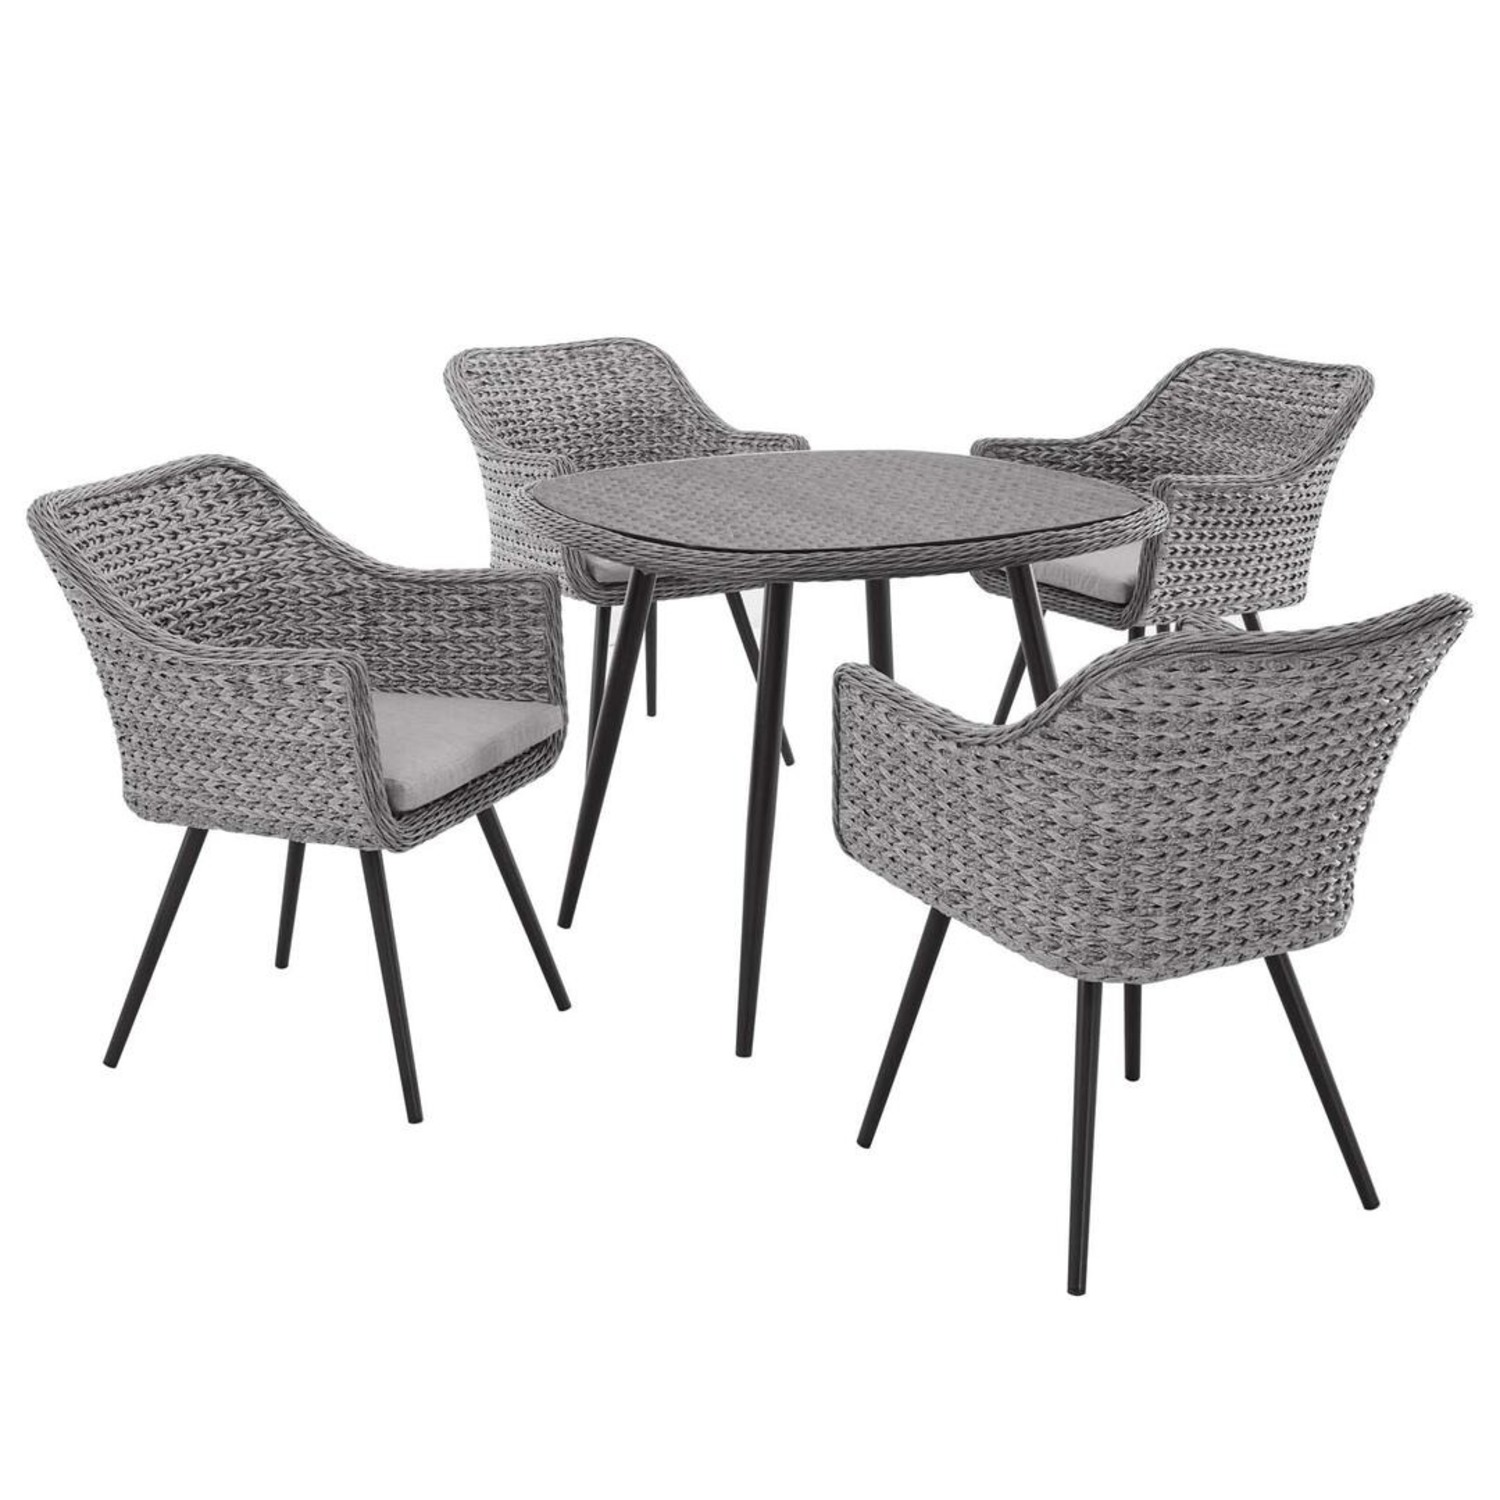 Modern 5-Piece Dining Set In Gray-On-Gray Tone - image-0